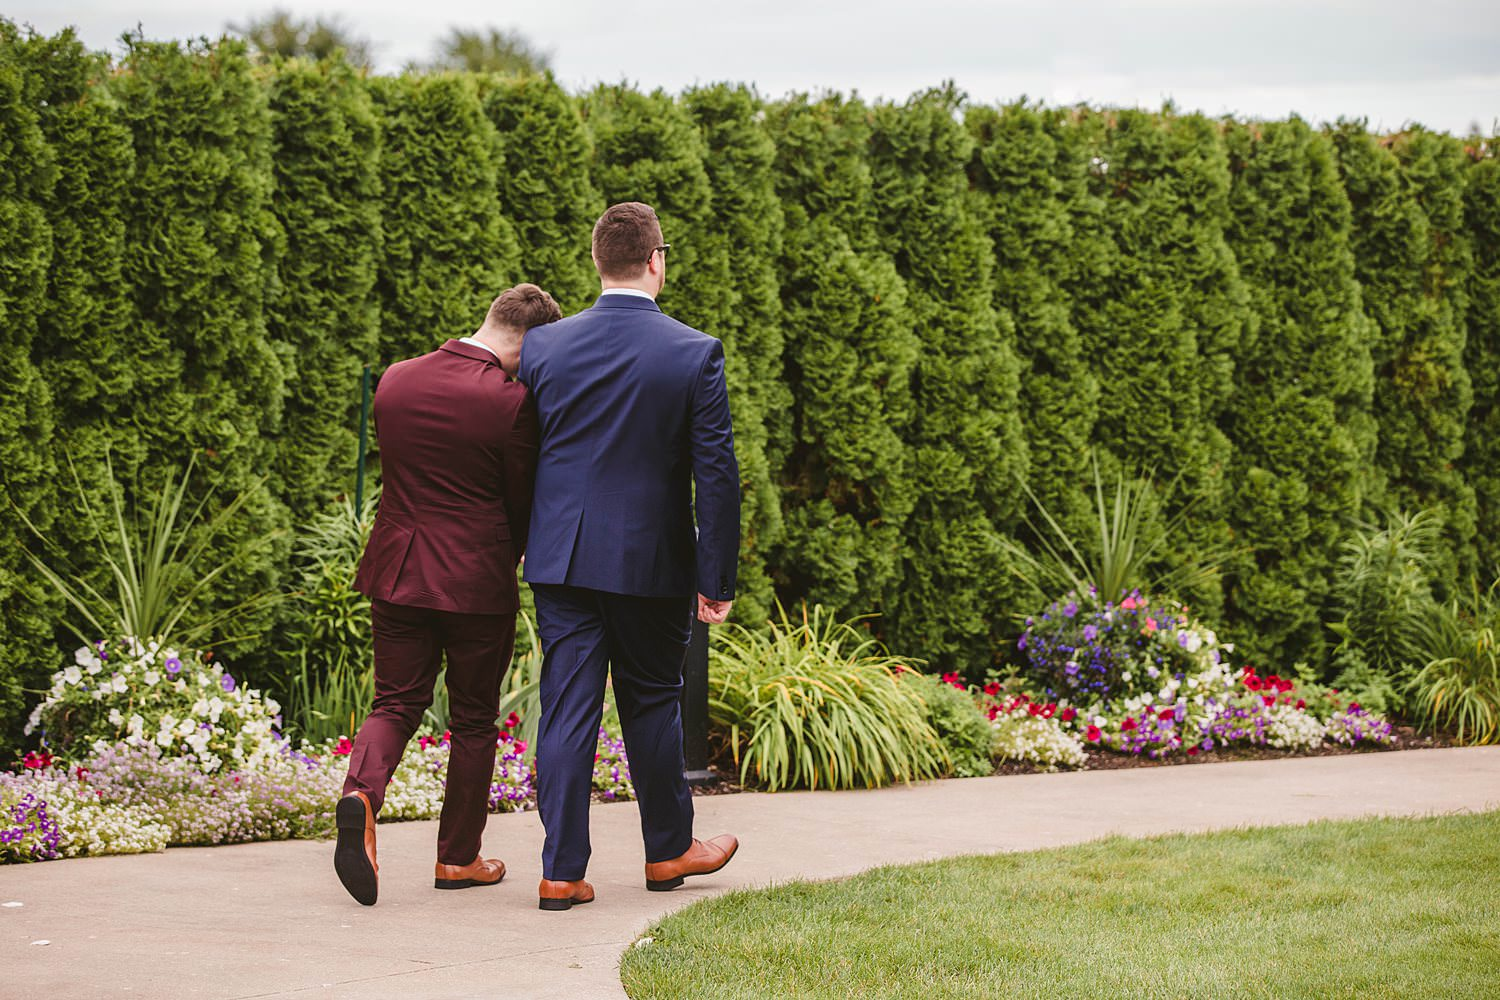 Castle Farms Northern Michigan LGBT Gay Wedding Photographer 1.jpg